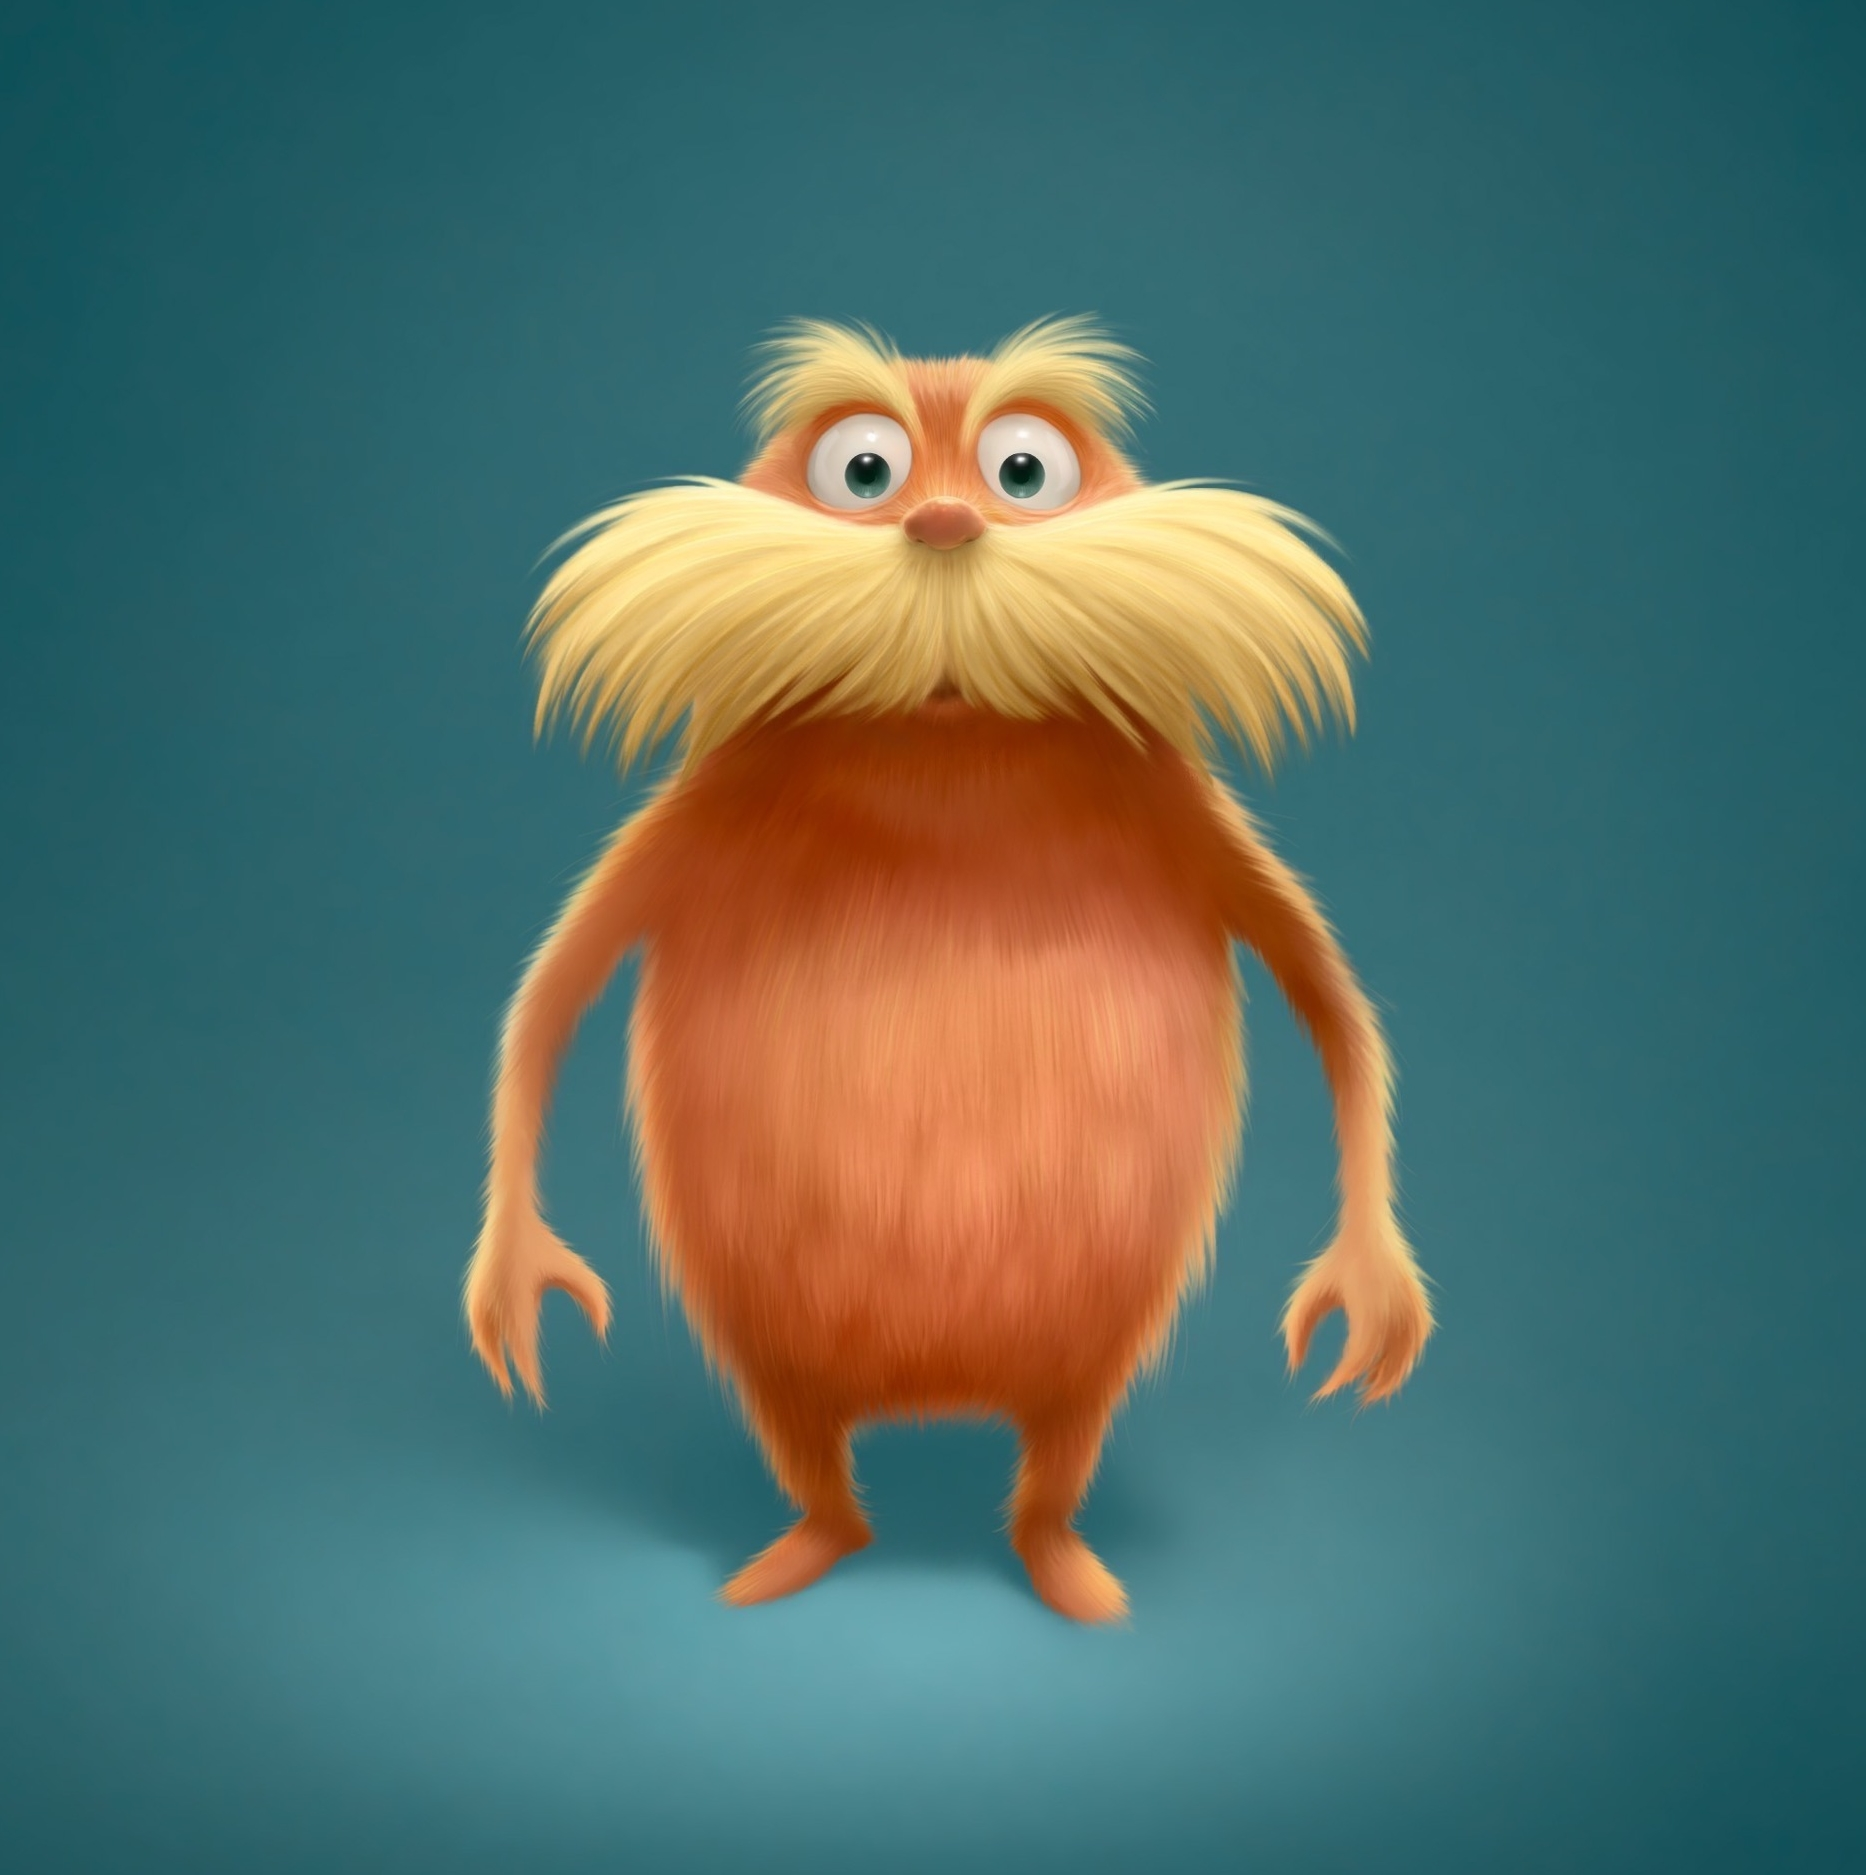 lorax_posed_B18.jpg